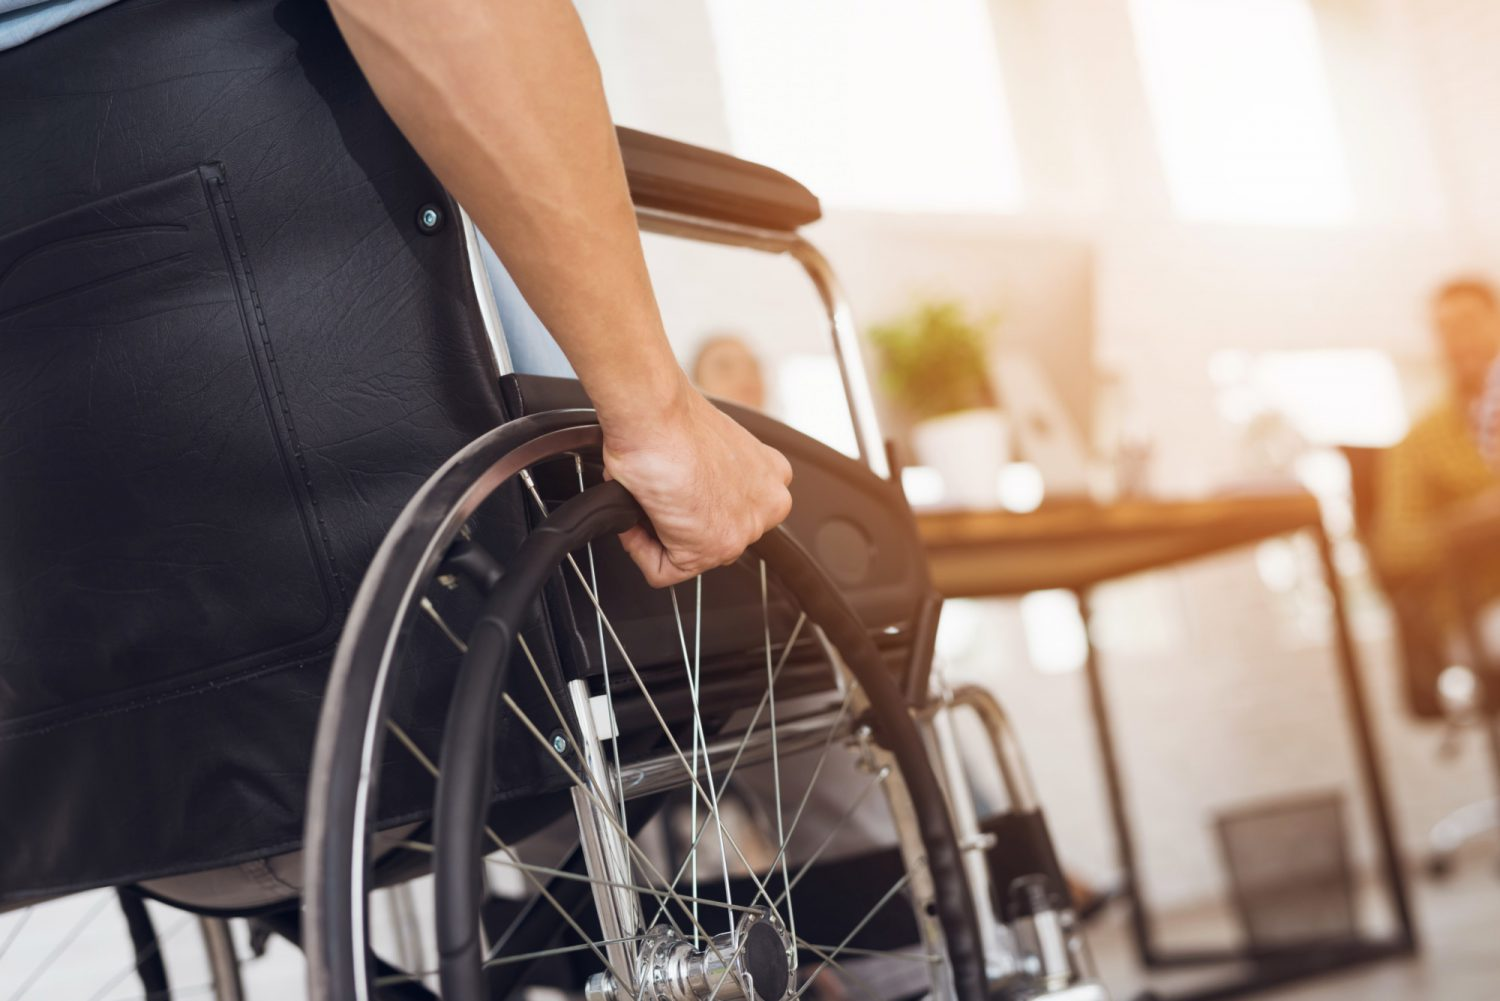 person with a disability navigating their everyday life